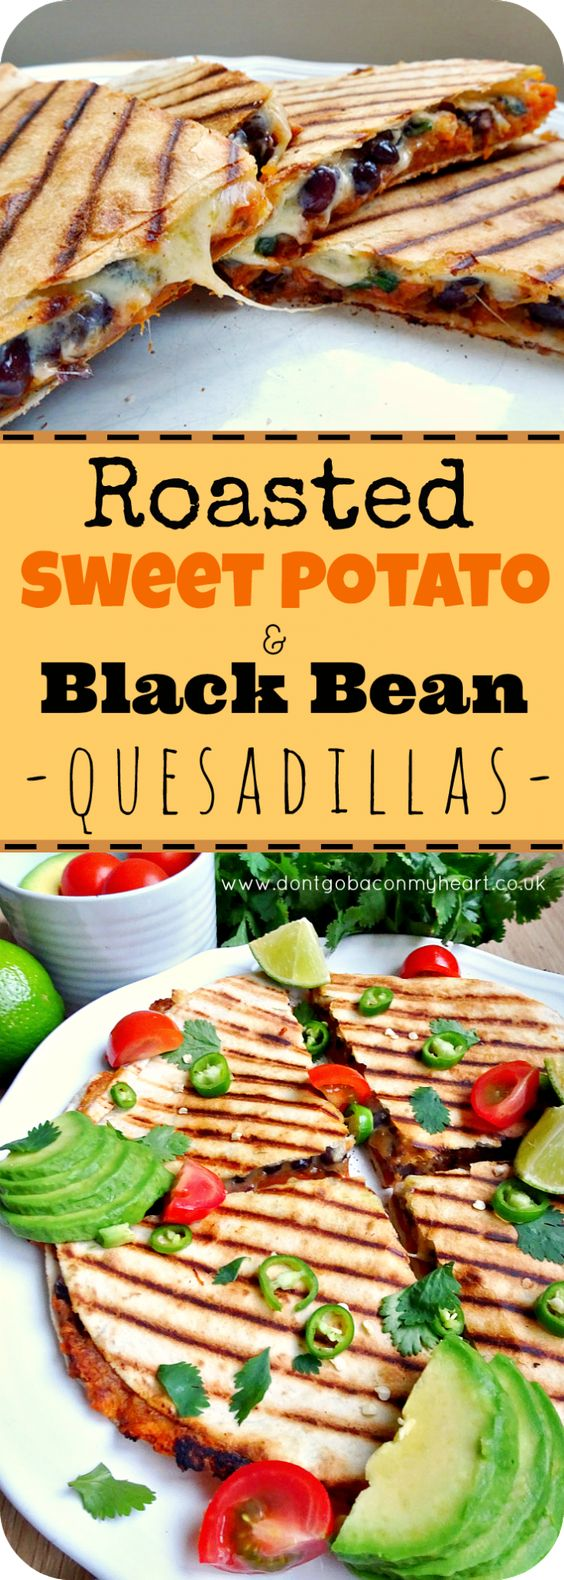 ★★★★☆ 7561 ratings   Roasted Sweet Potato and Black Bean Quesadillas #HEALTHYFOOD #EASYRECIPES #DINNER #LAUCH #DELICIOUS #EASY #HOLIDAYS #RECIPE #Roasted #Sweet #Potato #Black #Bean #Quesadillas